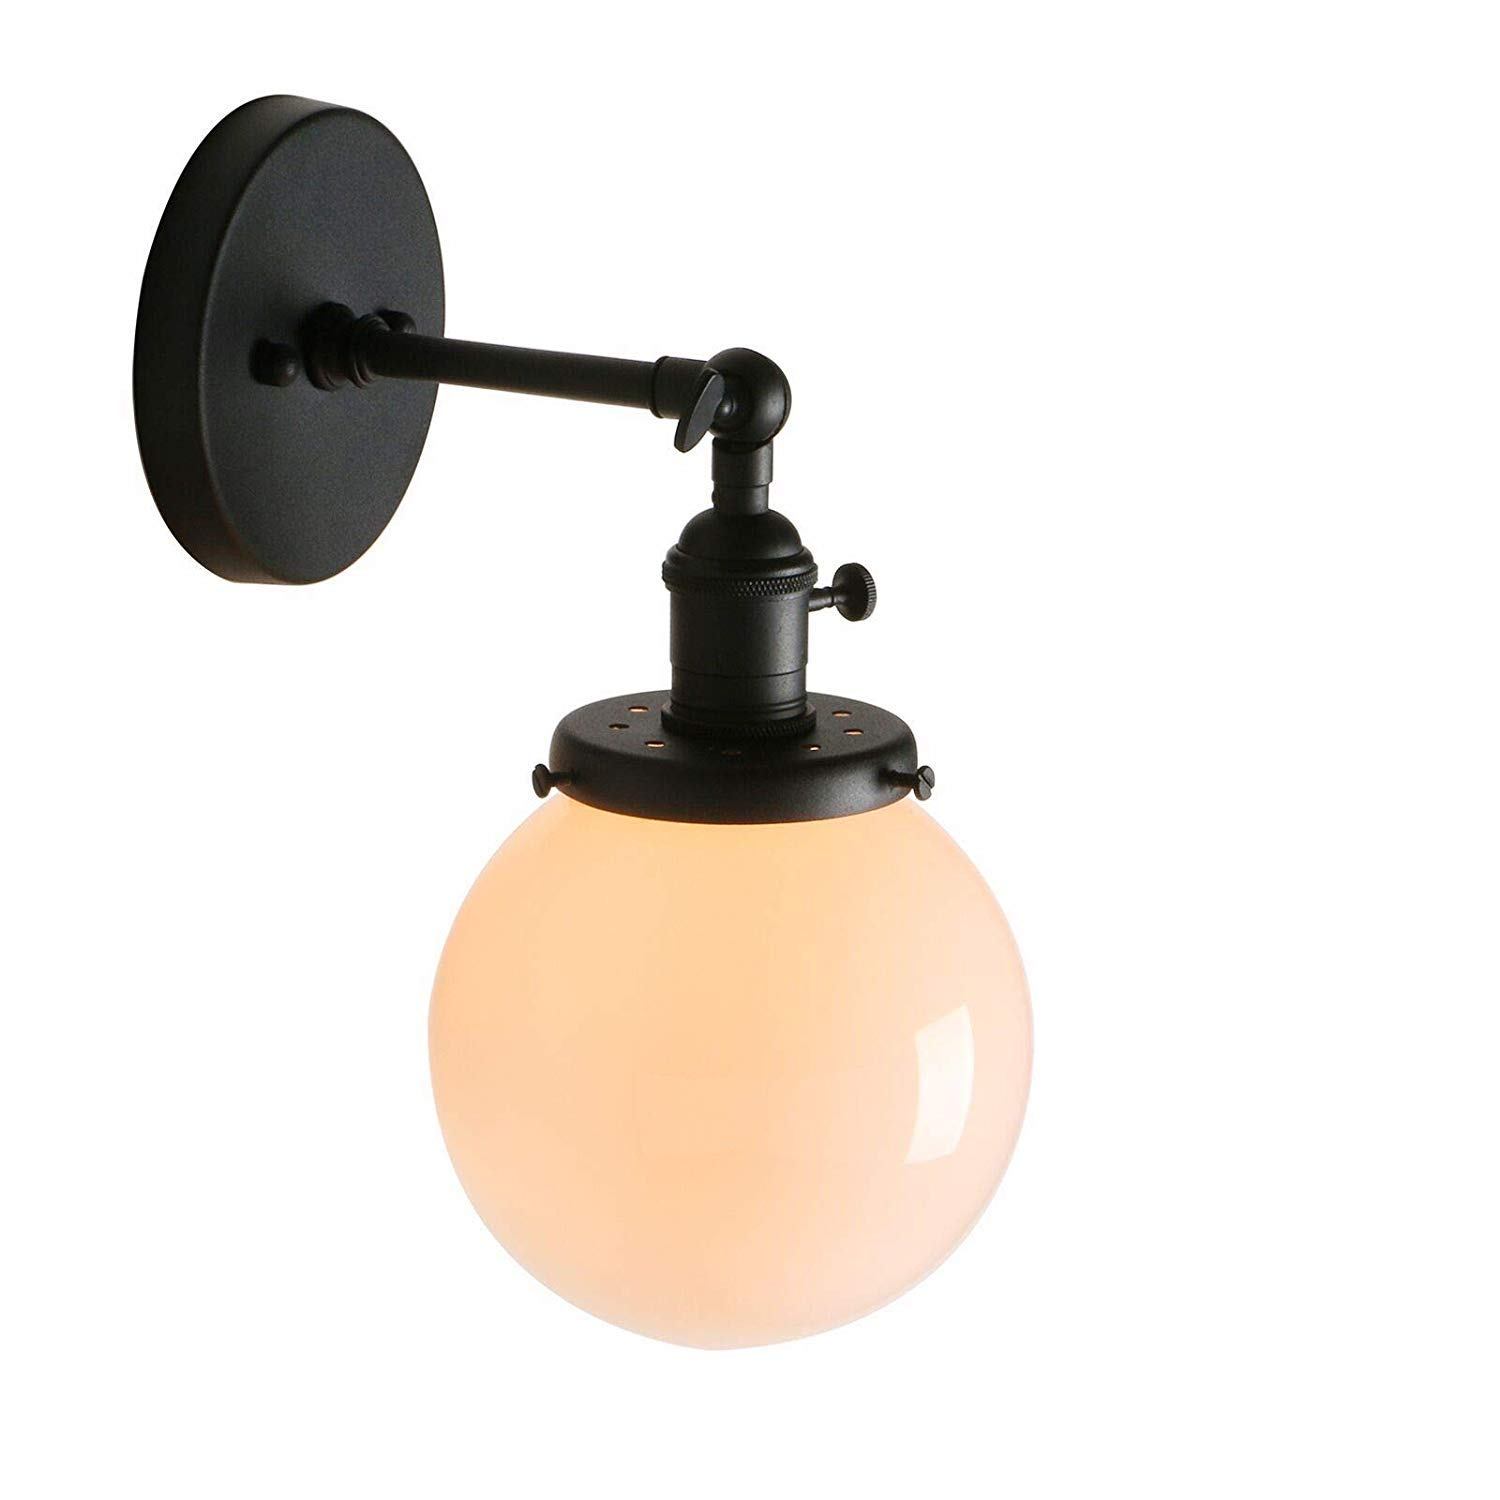 Pathson 1-Light Wall Sconce with White Globe Shade, Metal Base Wall Lamps, Vintage Style Wall Light Fixtures with On Off Switch for Indoor Bathroom Lightning